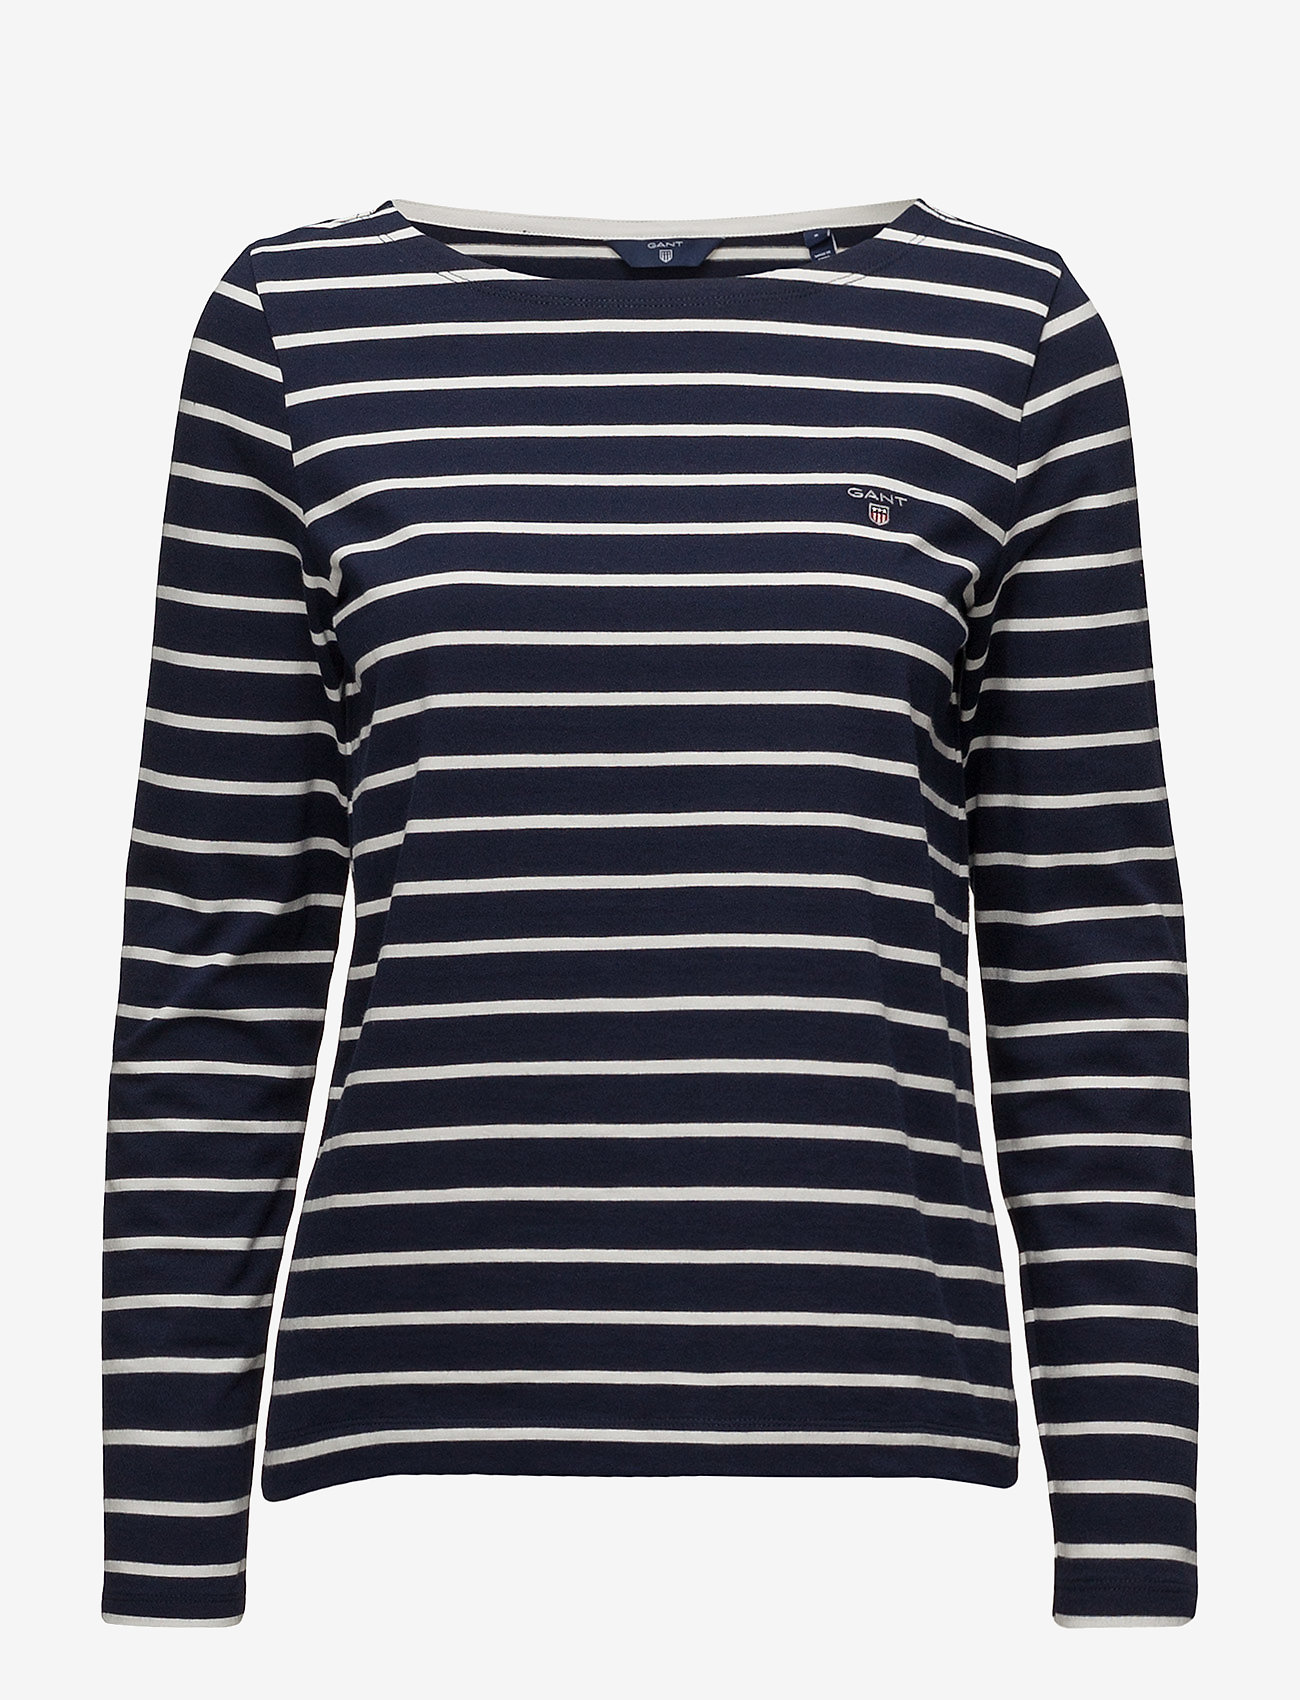 Gant - BRETON STRIPE BOATNECK JUMPER - logo t-shirts - evening blue